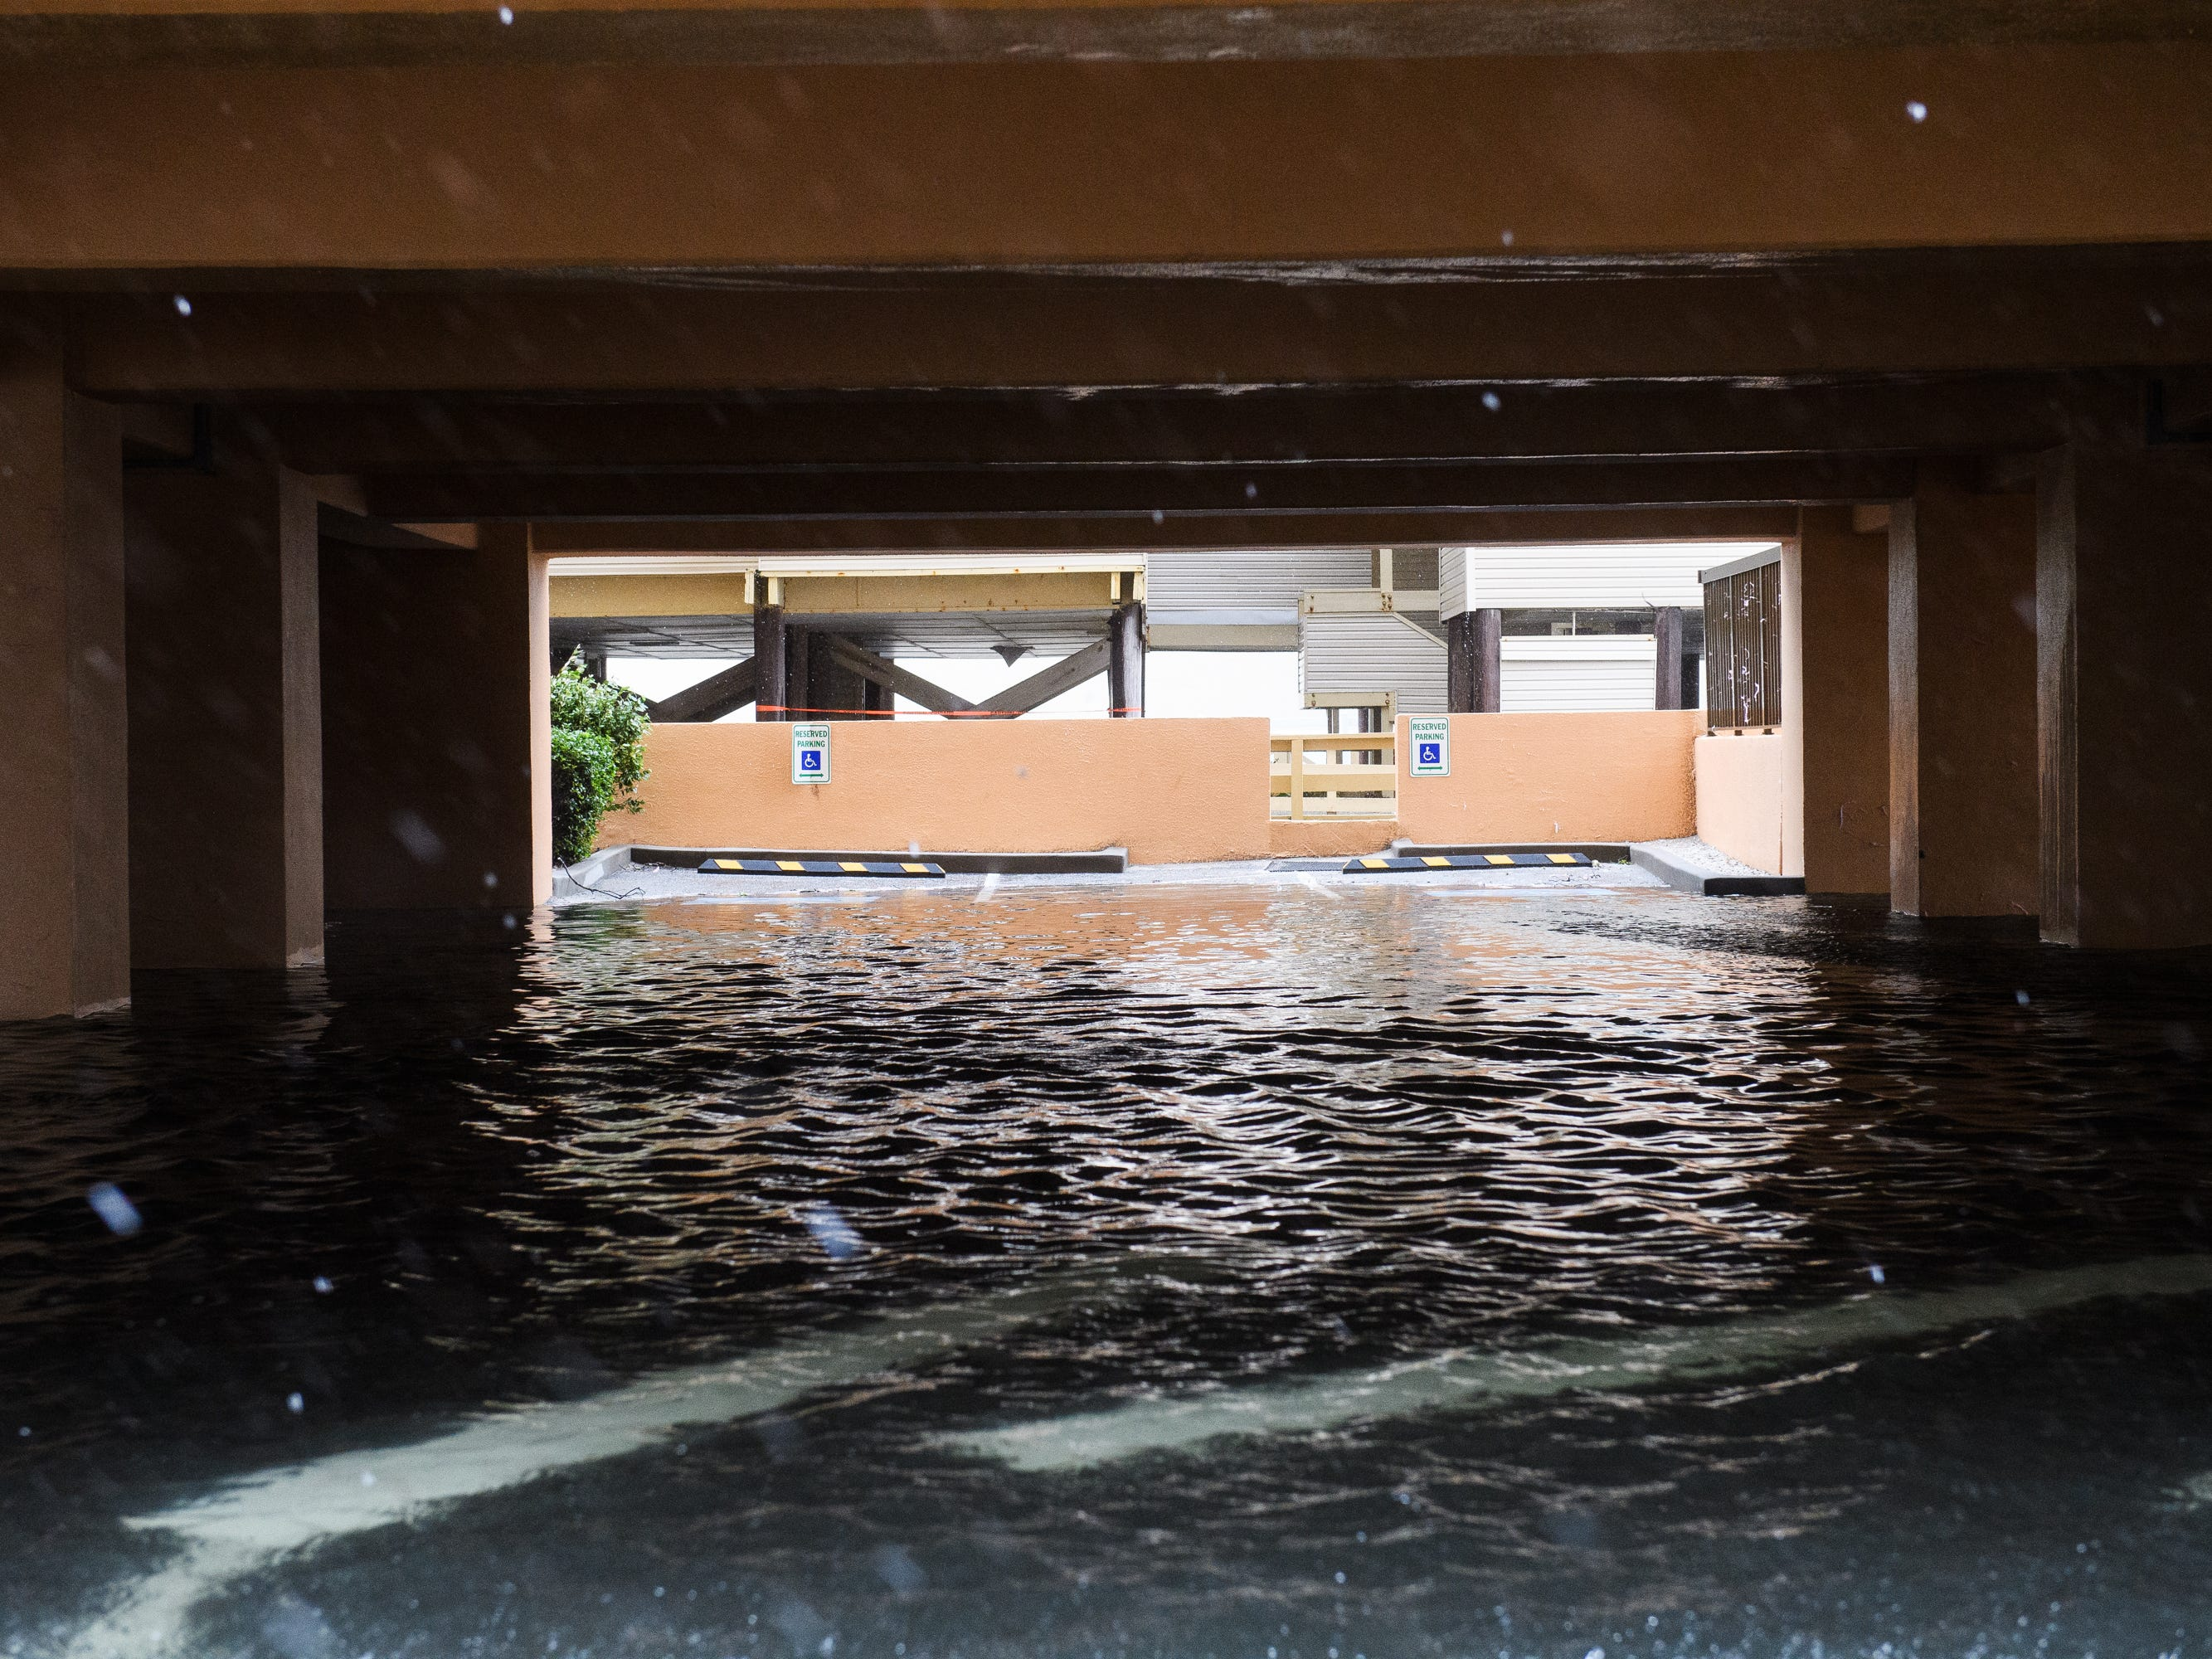 A parking structure near the ocean is flooded due to Hurricane Florence in North Myrtle Beach on Friday, Sept. 14, 2018.